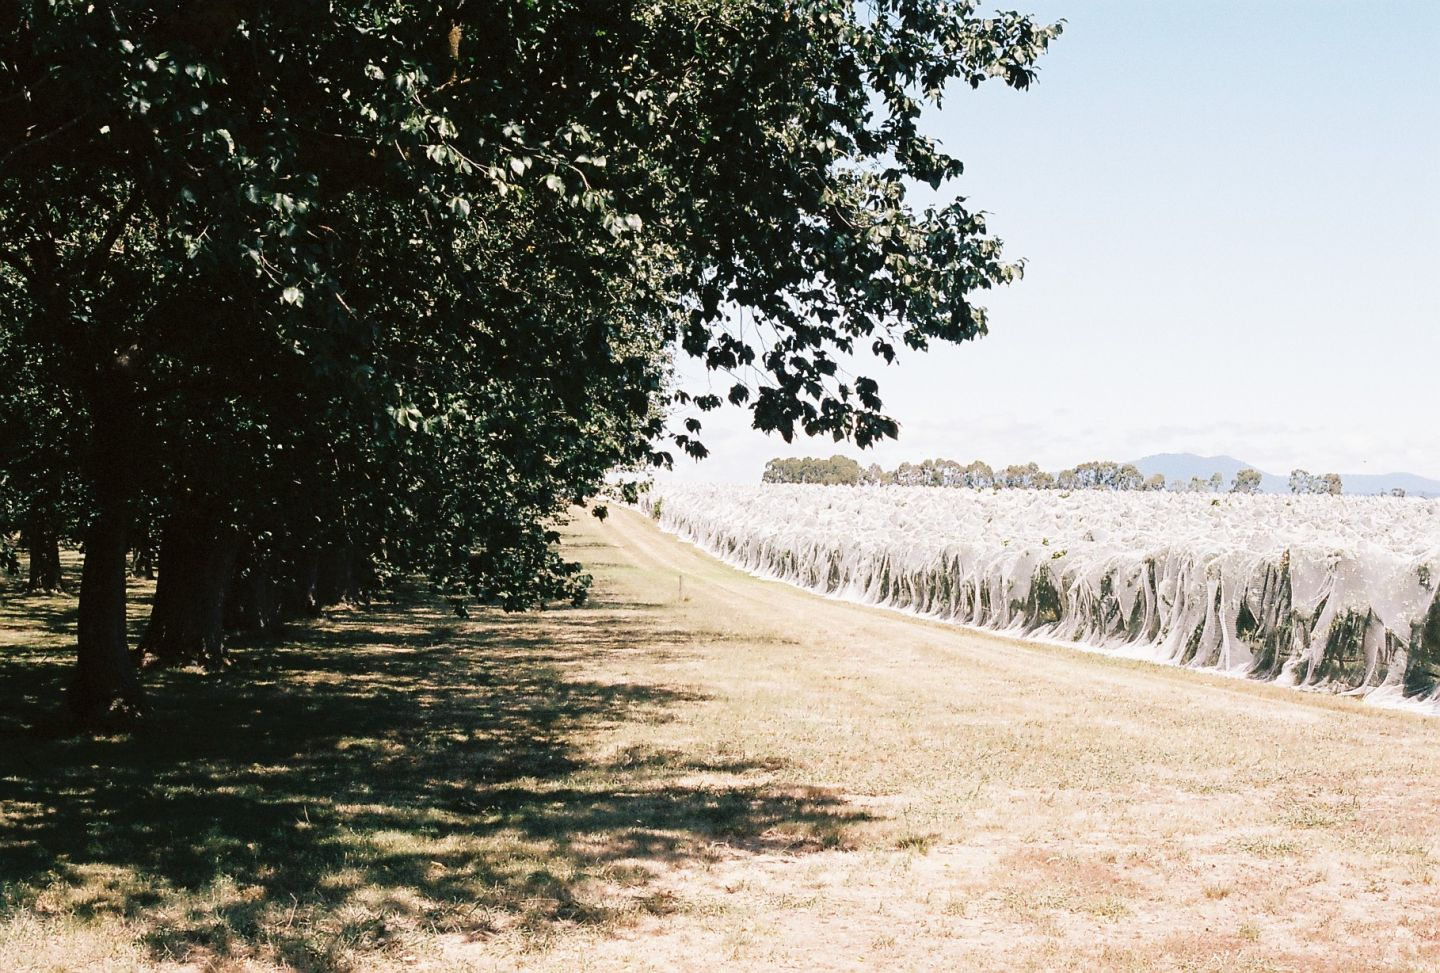 Lindsay | The Long, Slow Ripening of the Yarra Valley Grape: an Interview with Winemaker Darren Rathbone | Photo by Beth Wilkinson for Lindsay